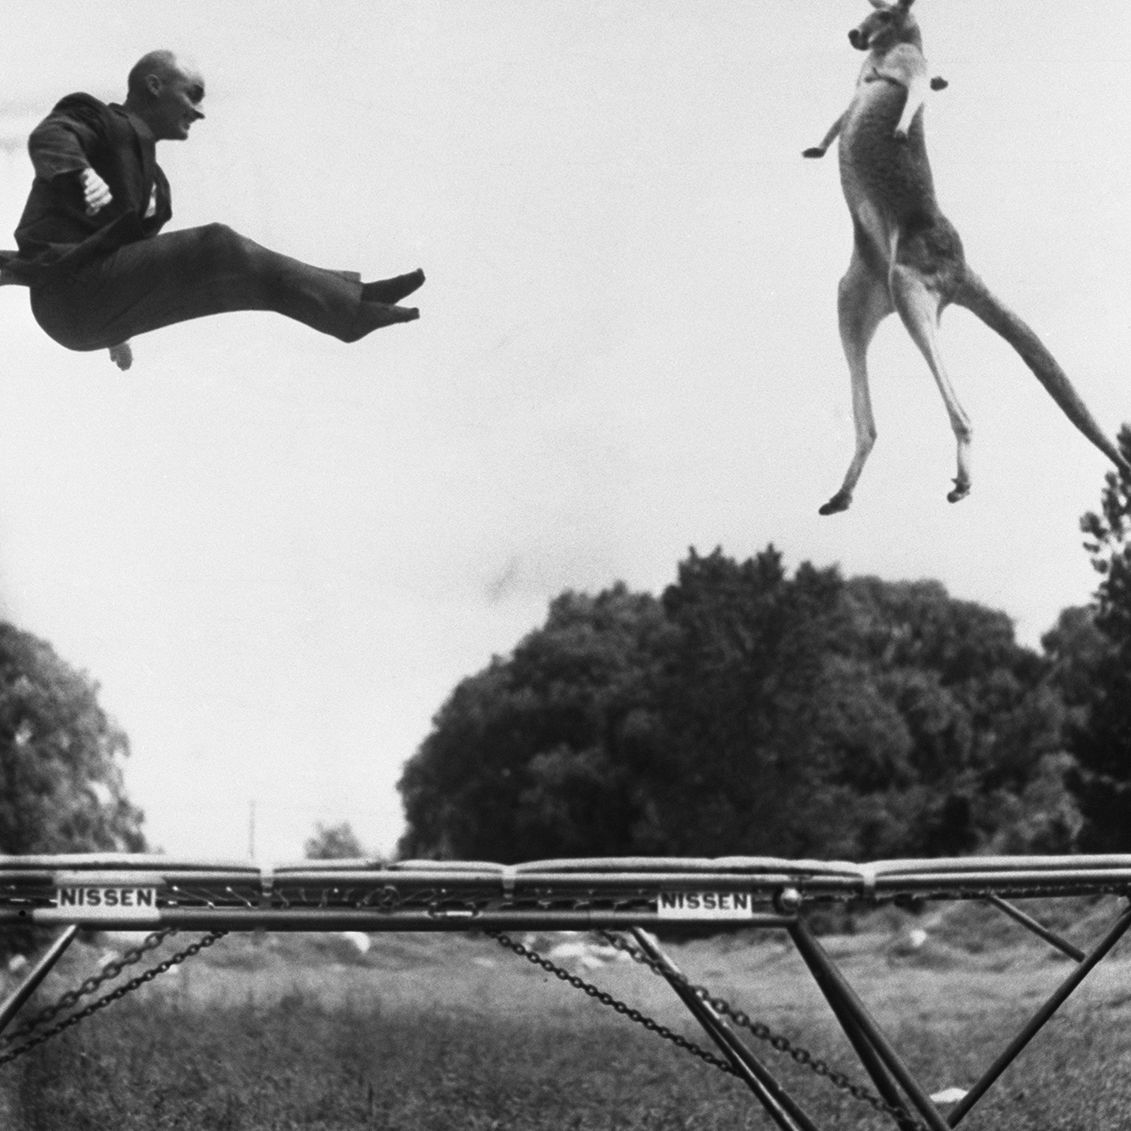 Kangaroo and man jumping on a trampoline, black and white photo.